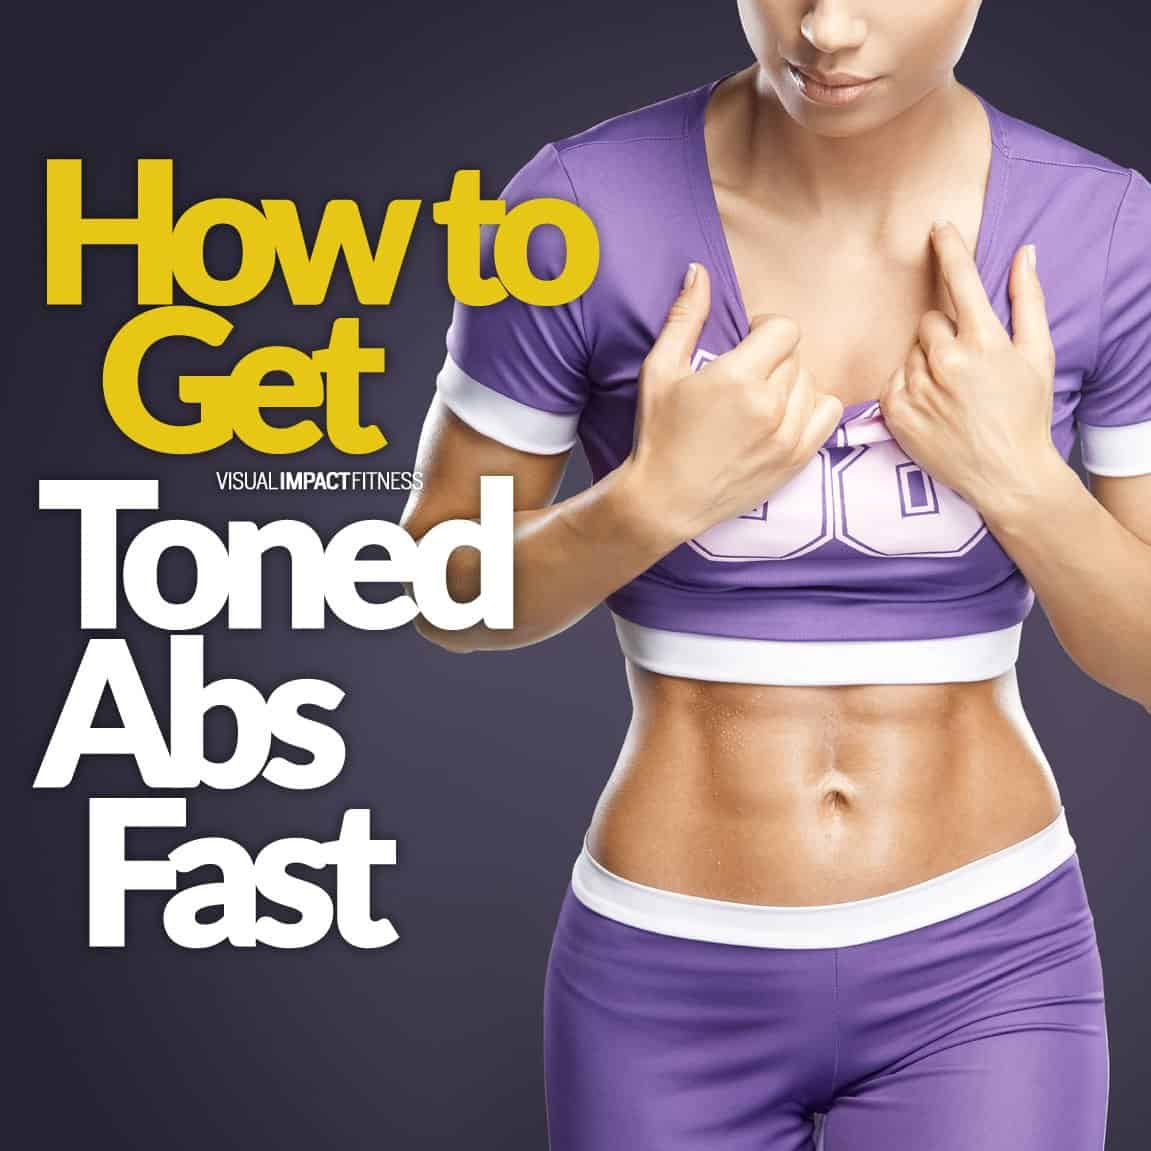 How to Get Toned Abs Fast